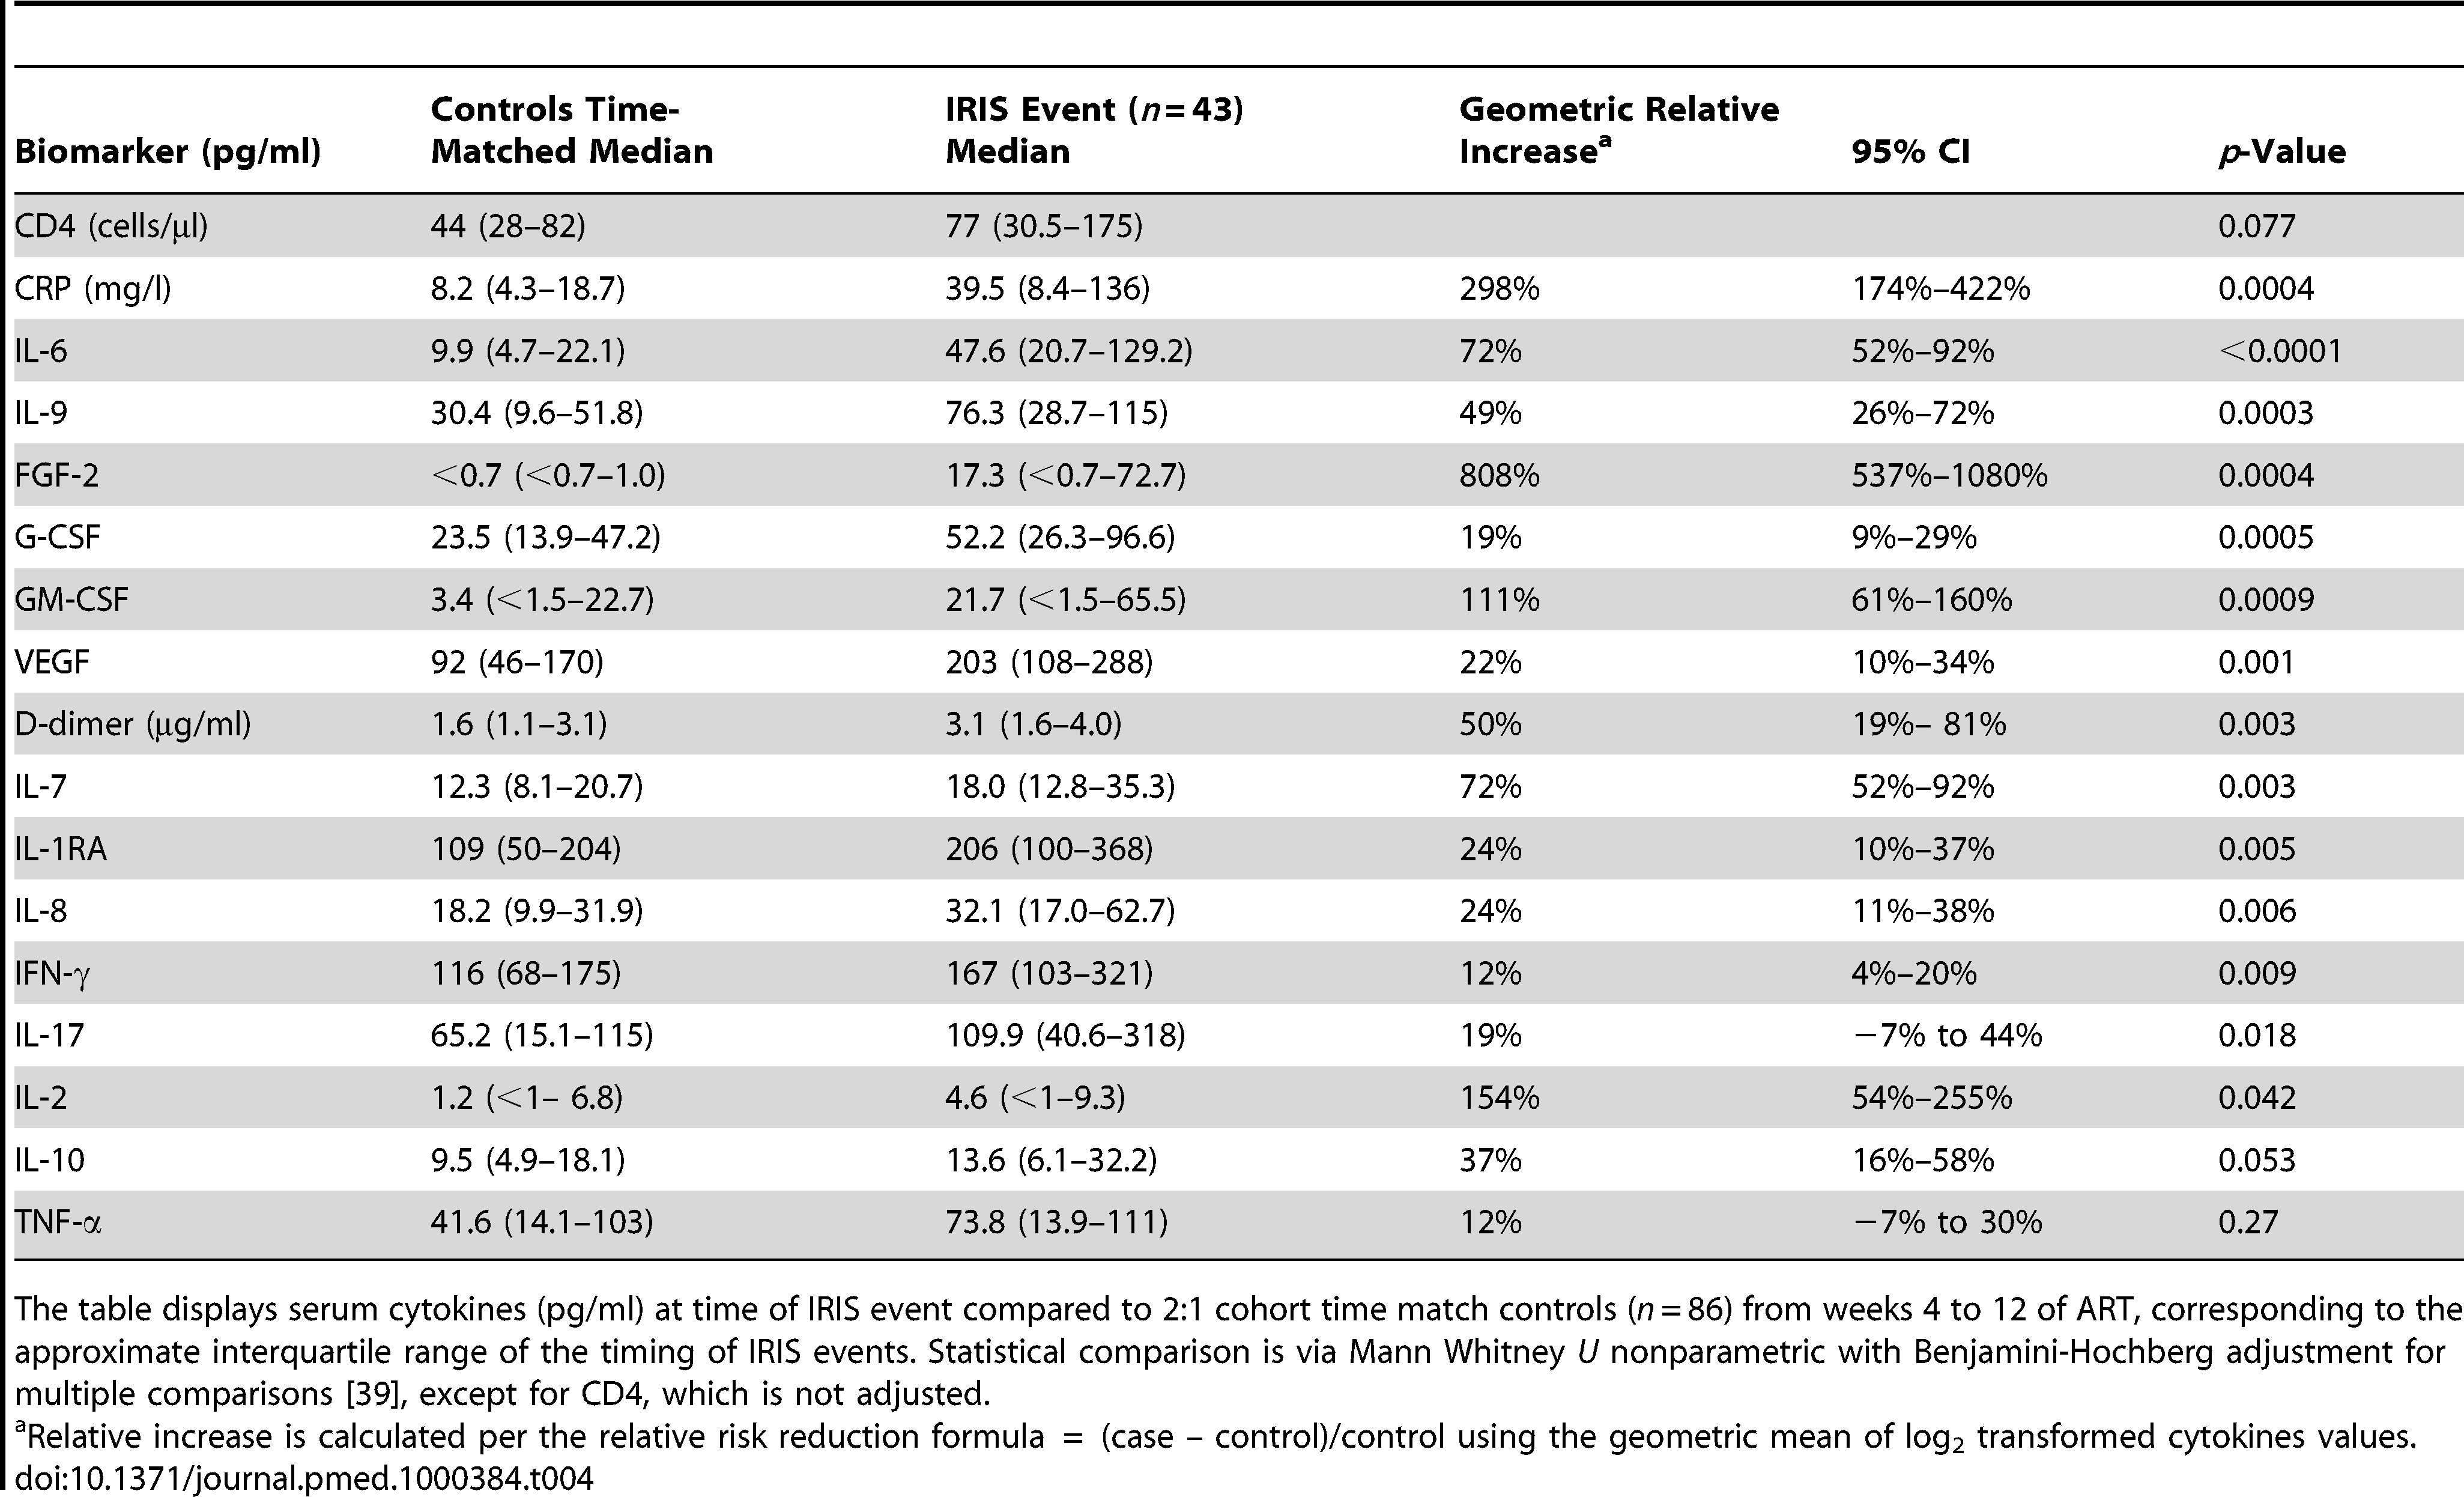 Increase in serum biomarkers at the time of first IRIS event compared to time-matched controls.